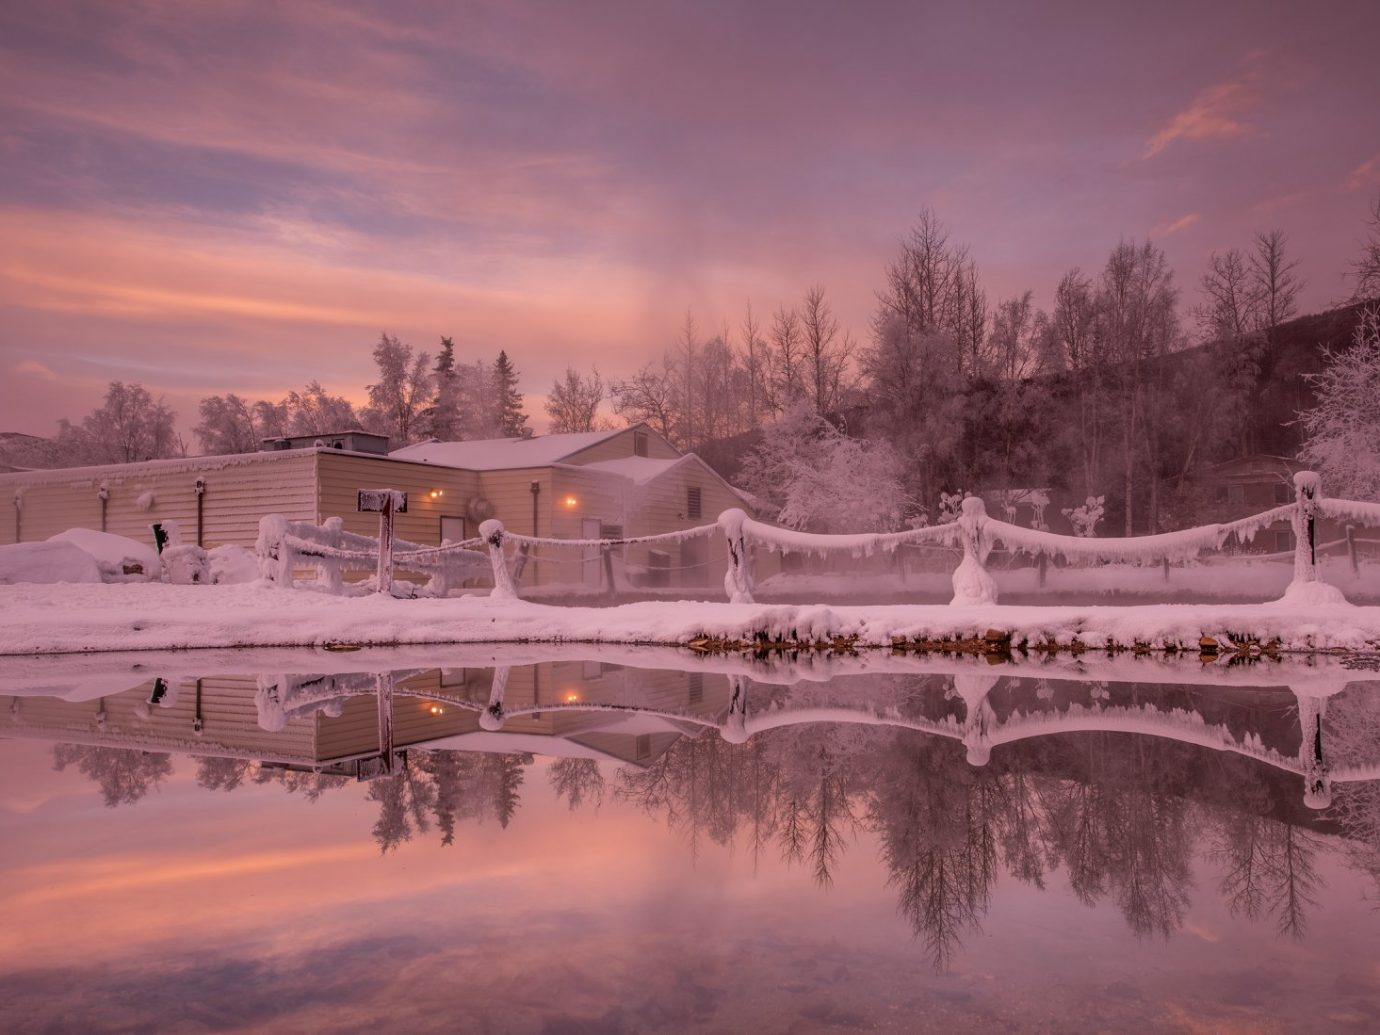 Chena Hot Springs with a pink sunset